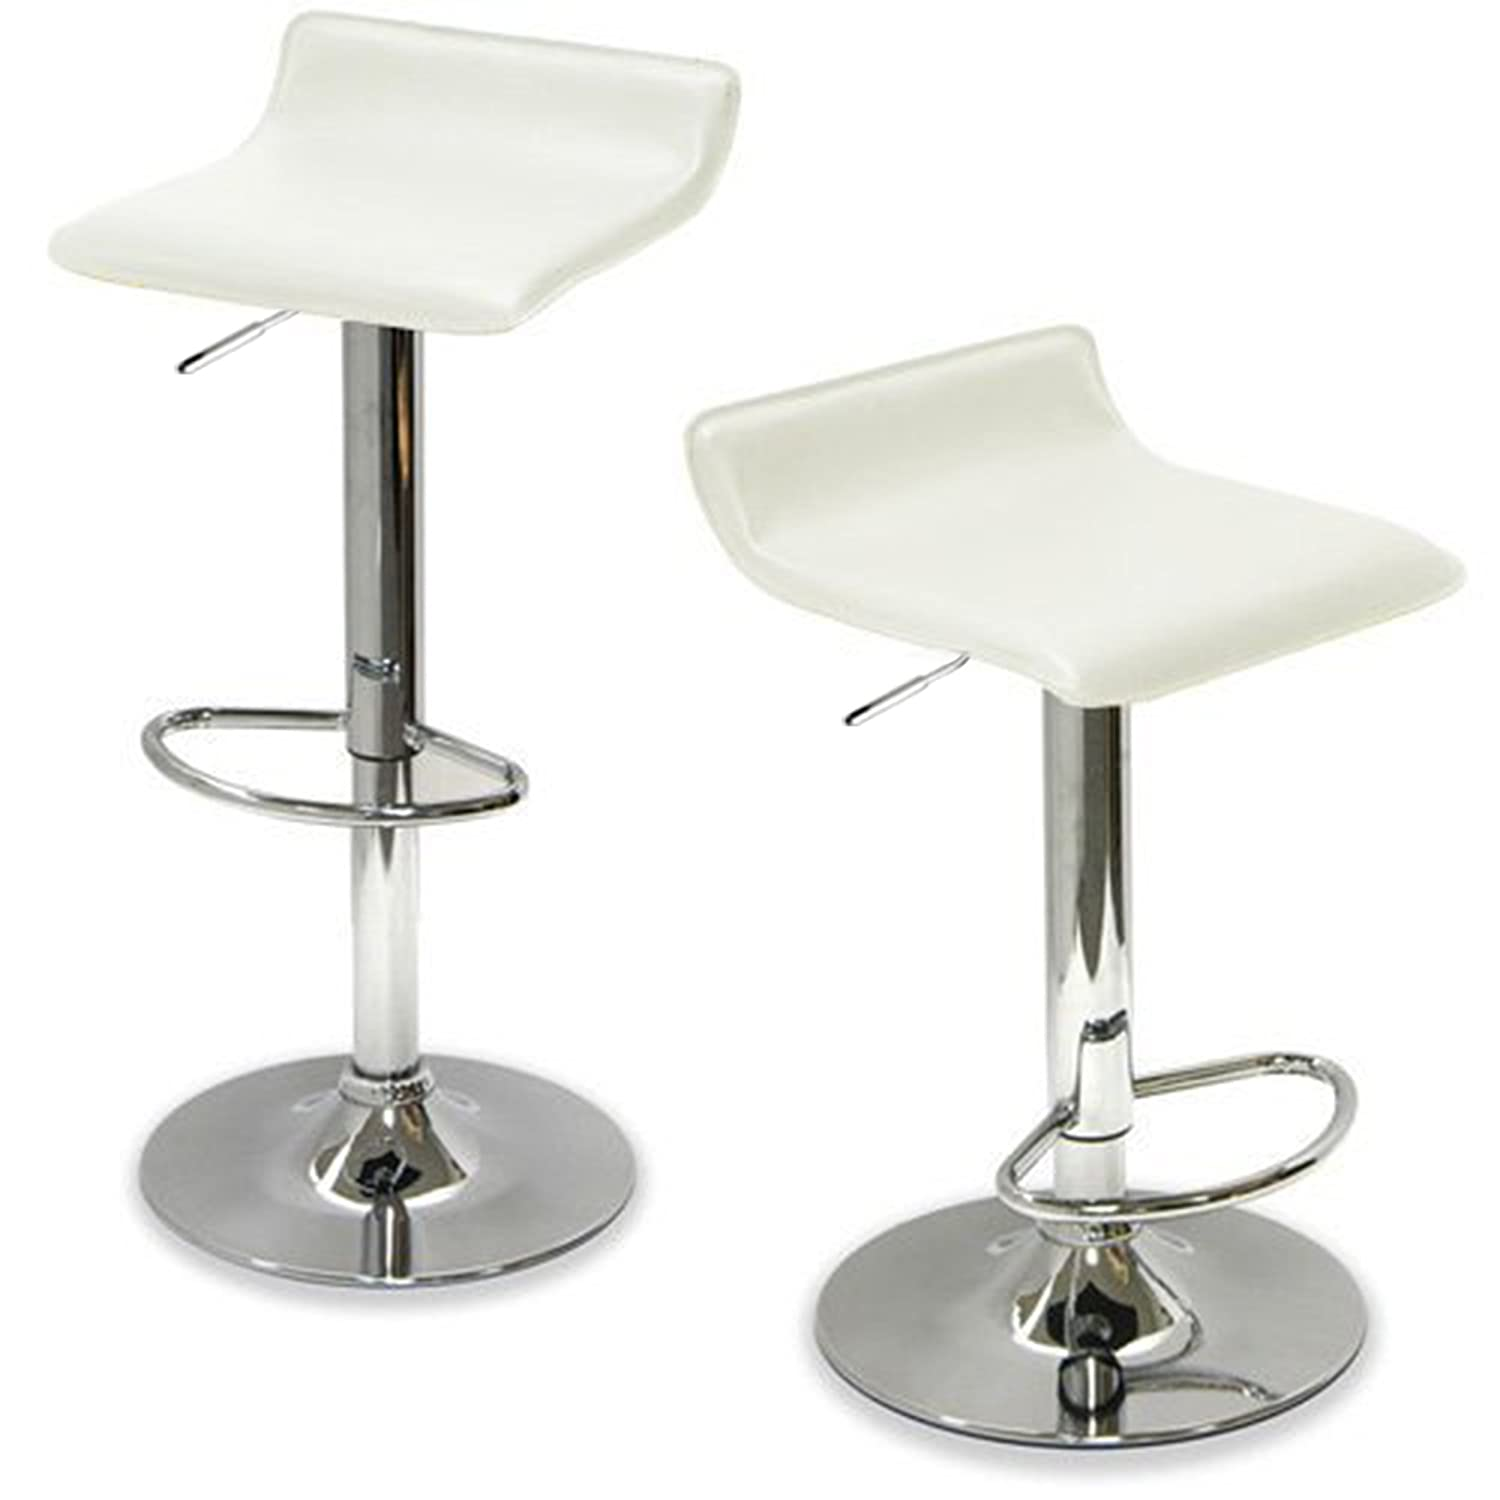 Amazon.com: Kingu0027s Brand 9009W Air Lift Adjustable Bar Stool With Vinyl  Seat, White And Chrome Finish, Set Of 2: Kitchen U0026 Dining